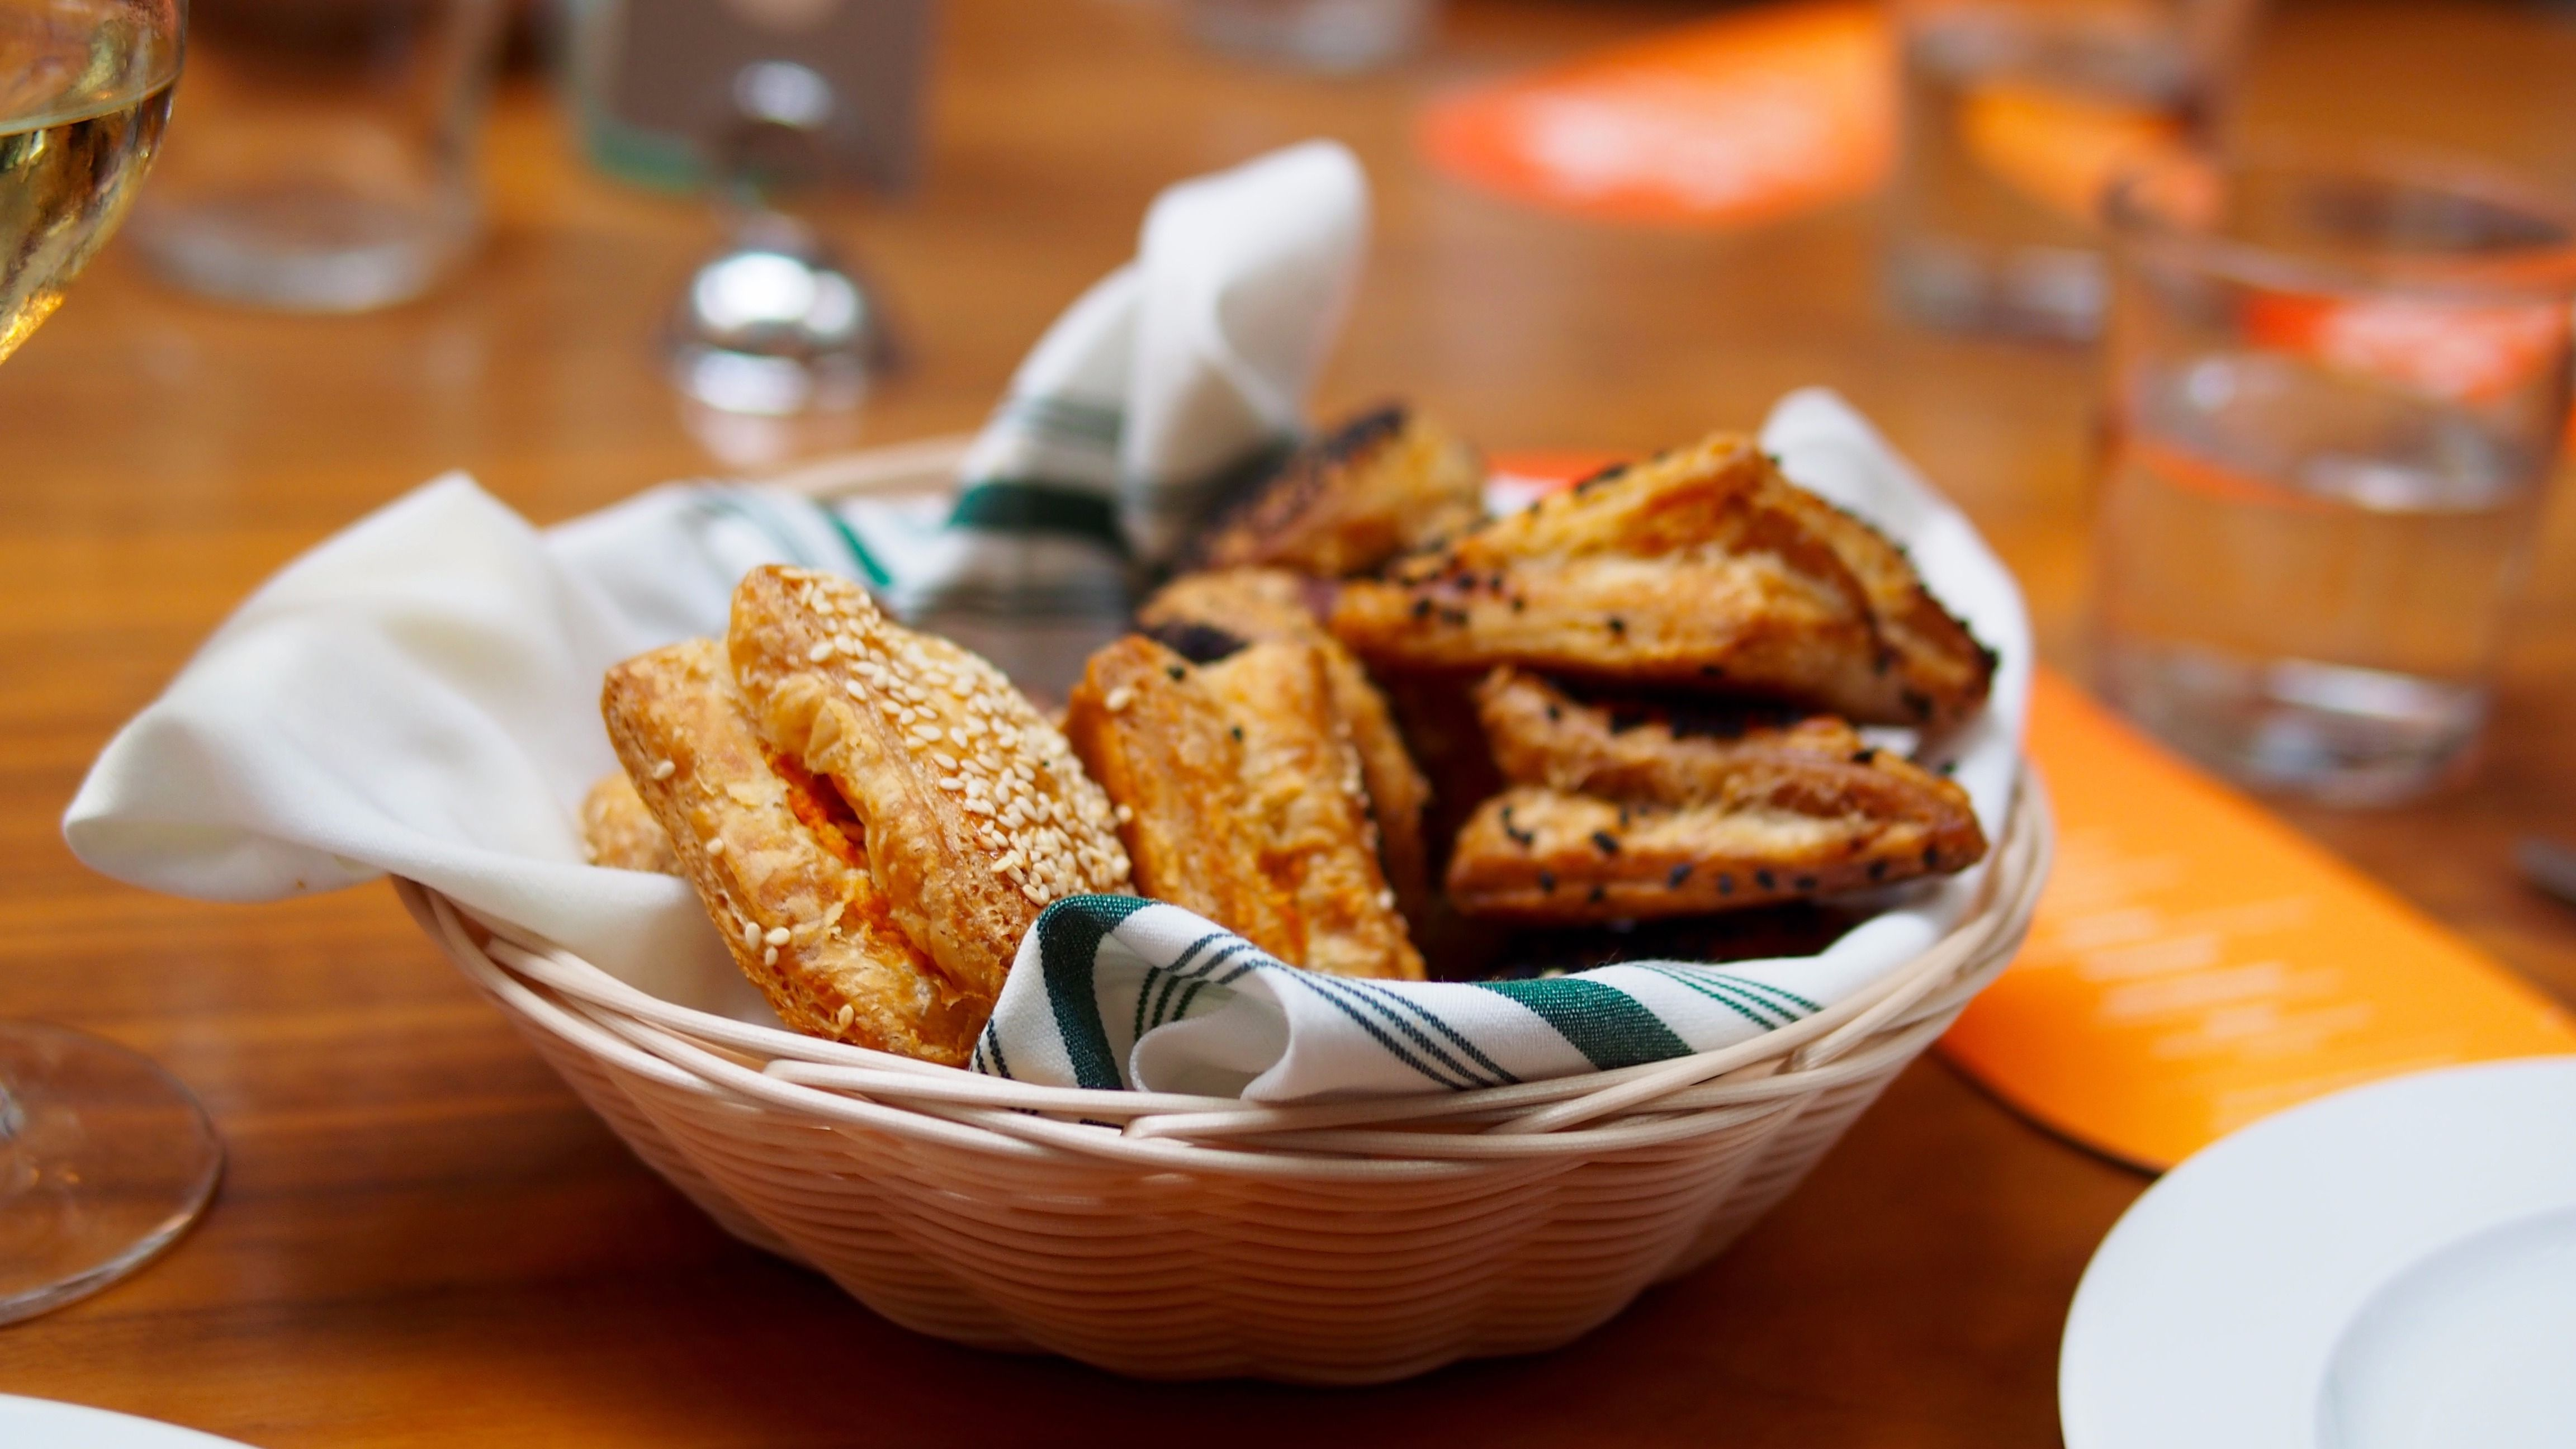 The bread basket included date and hazelnut rugelach and three types of bourekas.